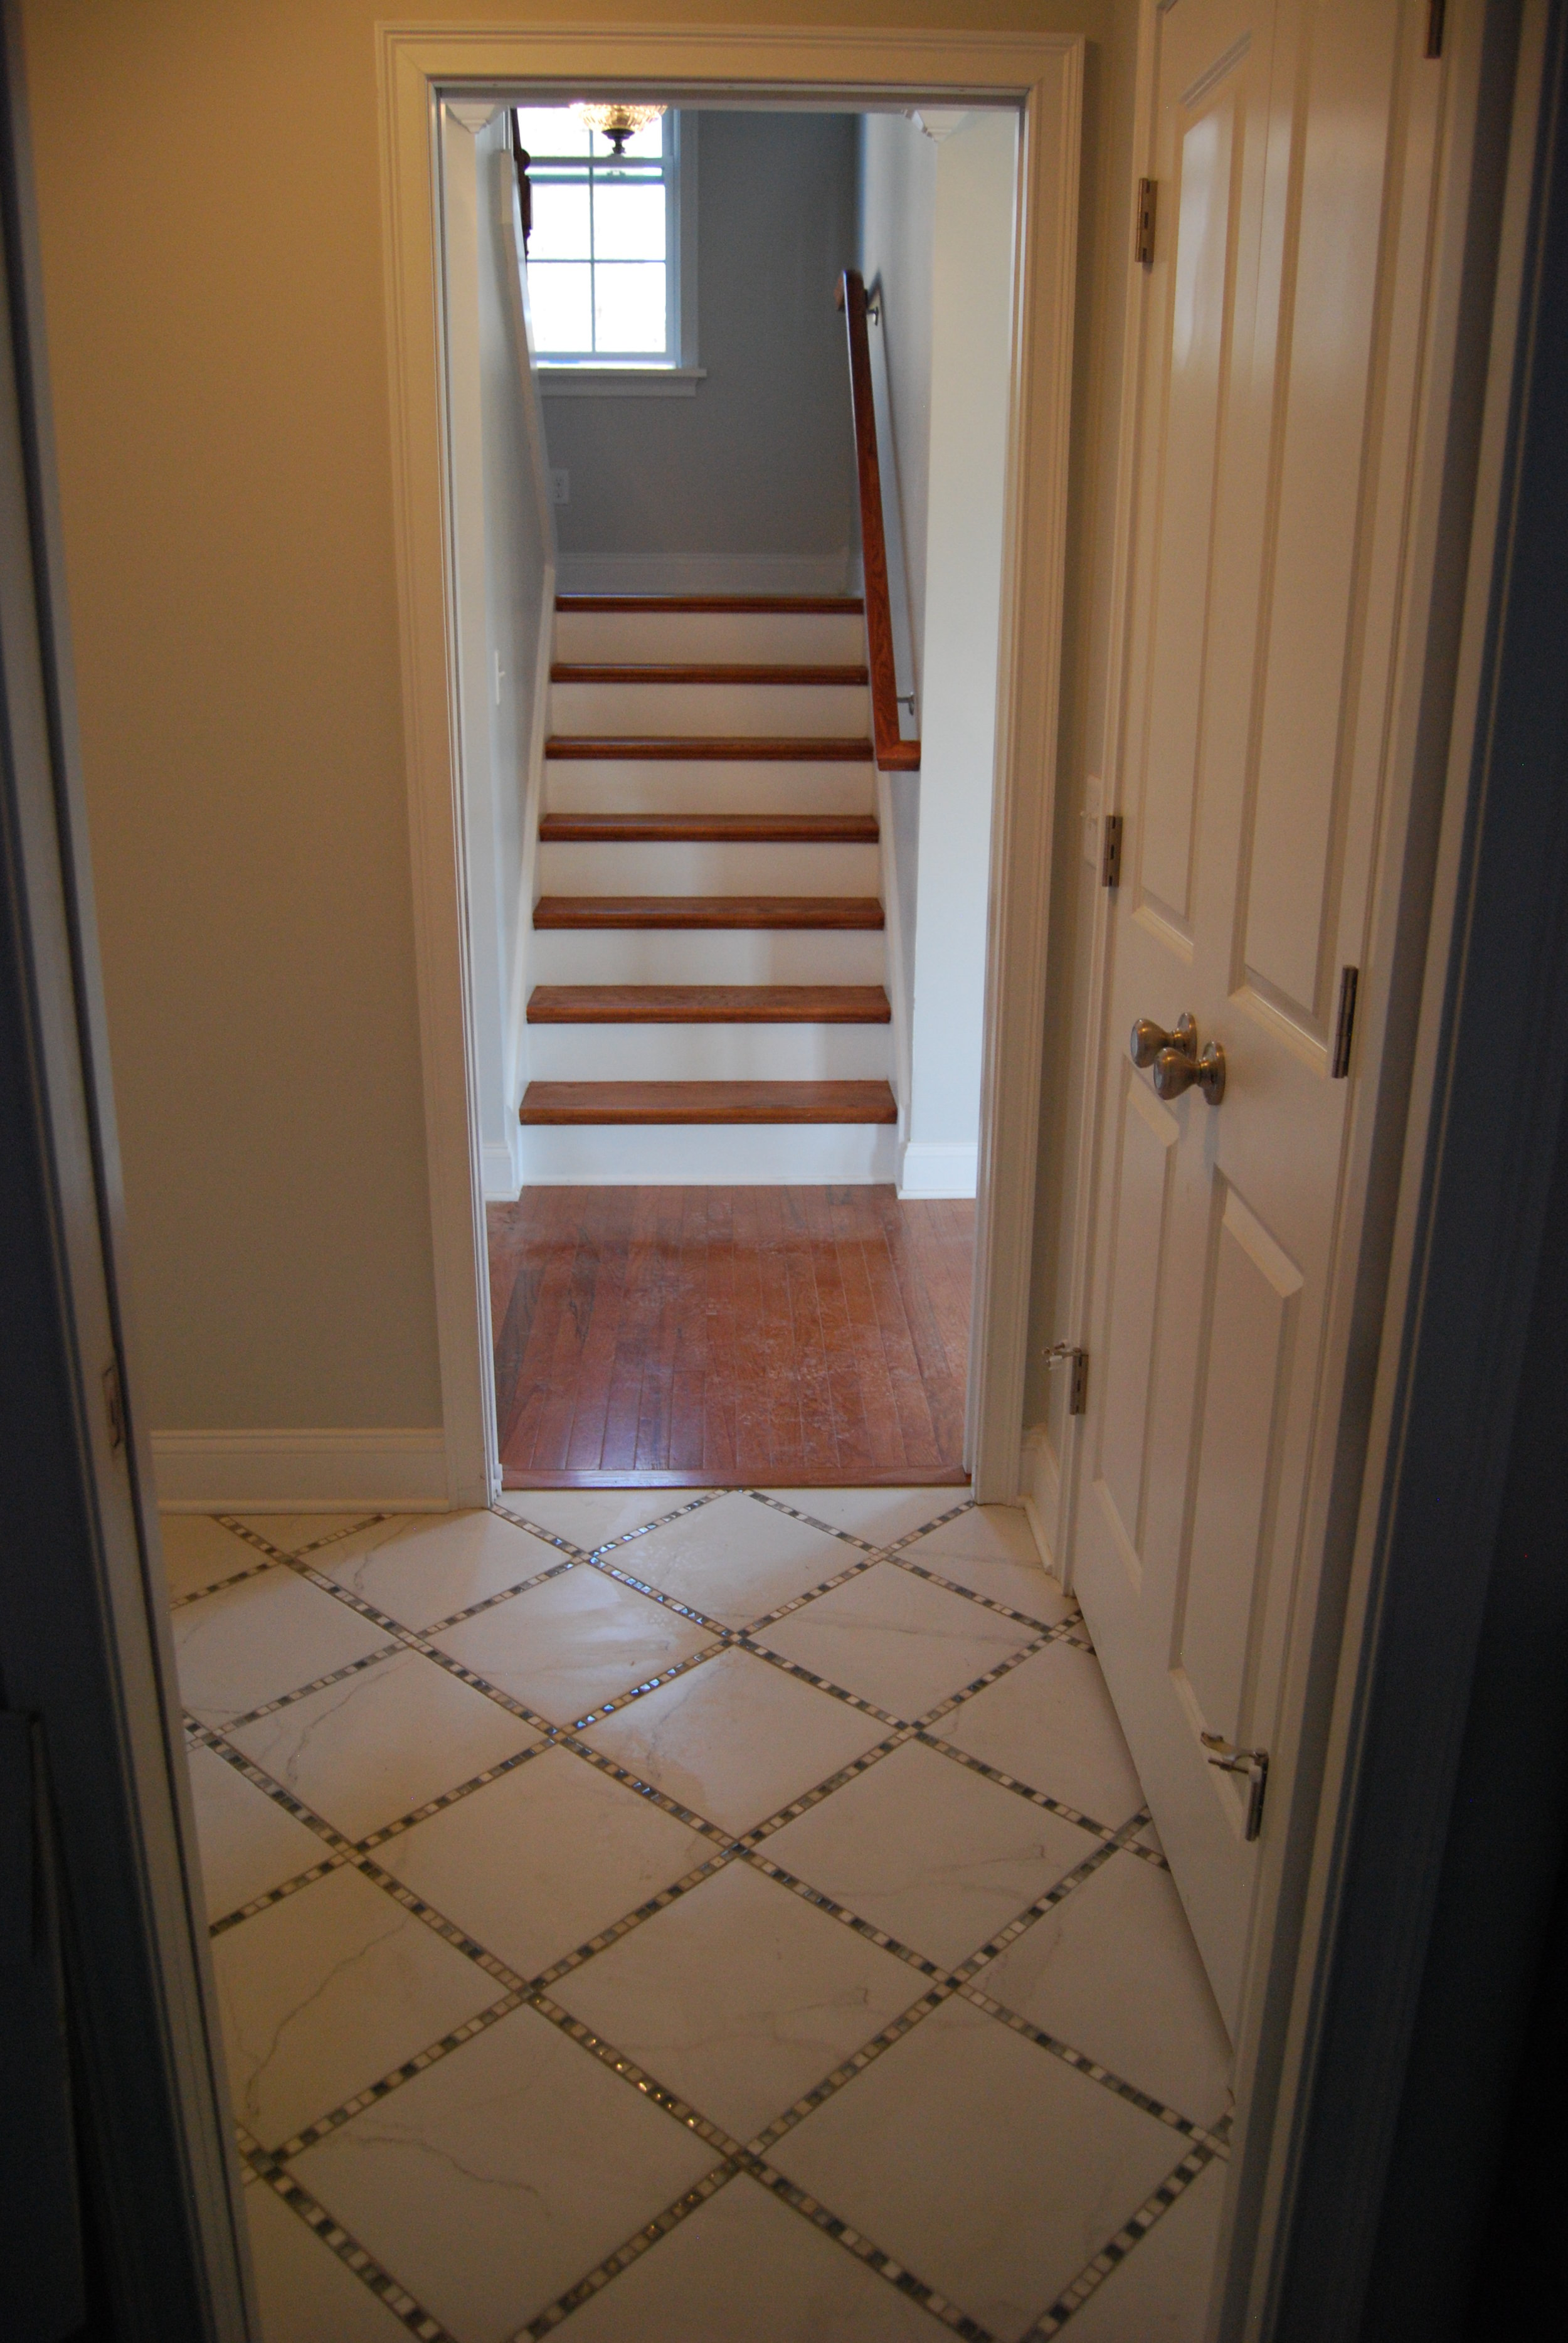 Copy of Bathroom Floor & Stairs